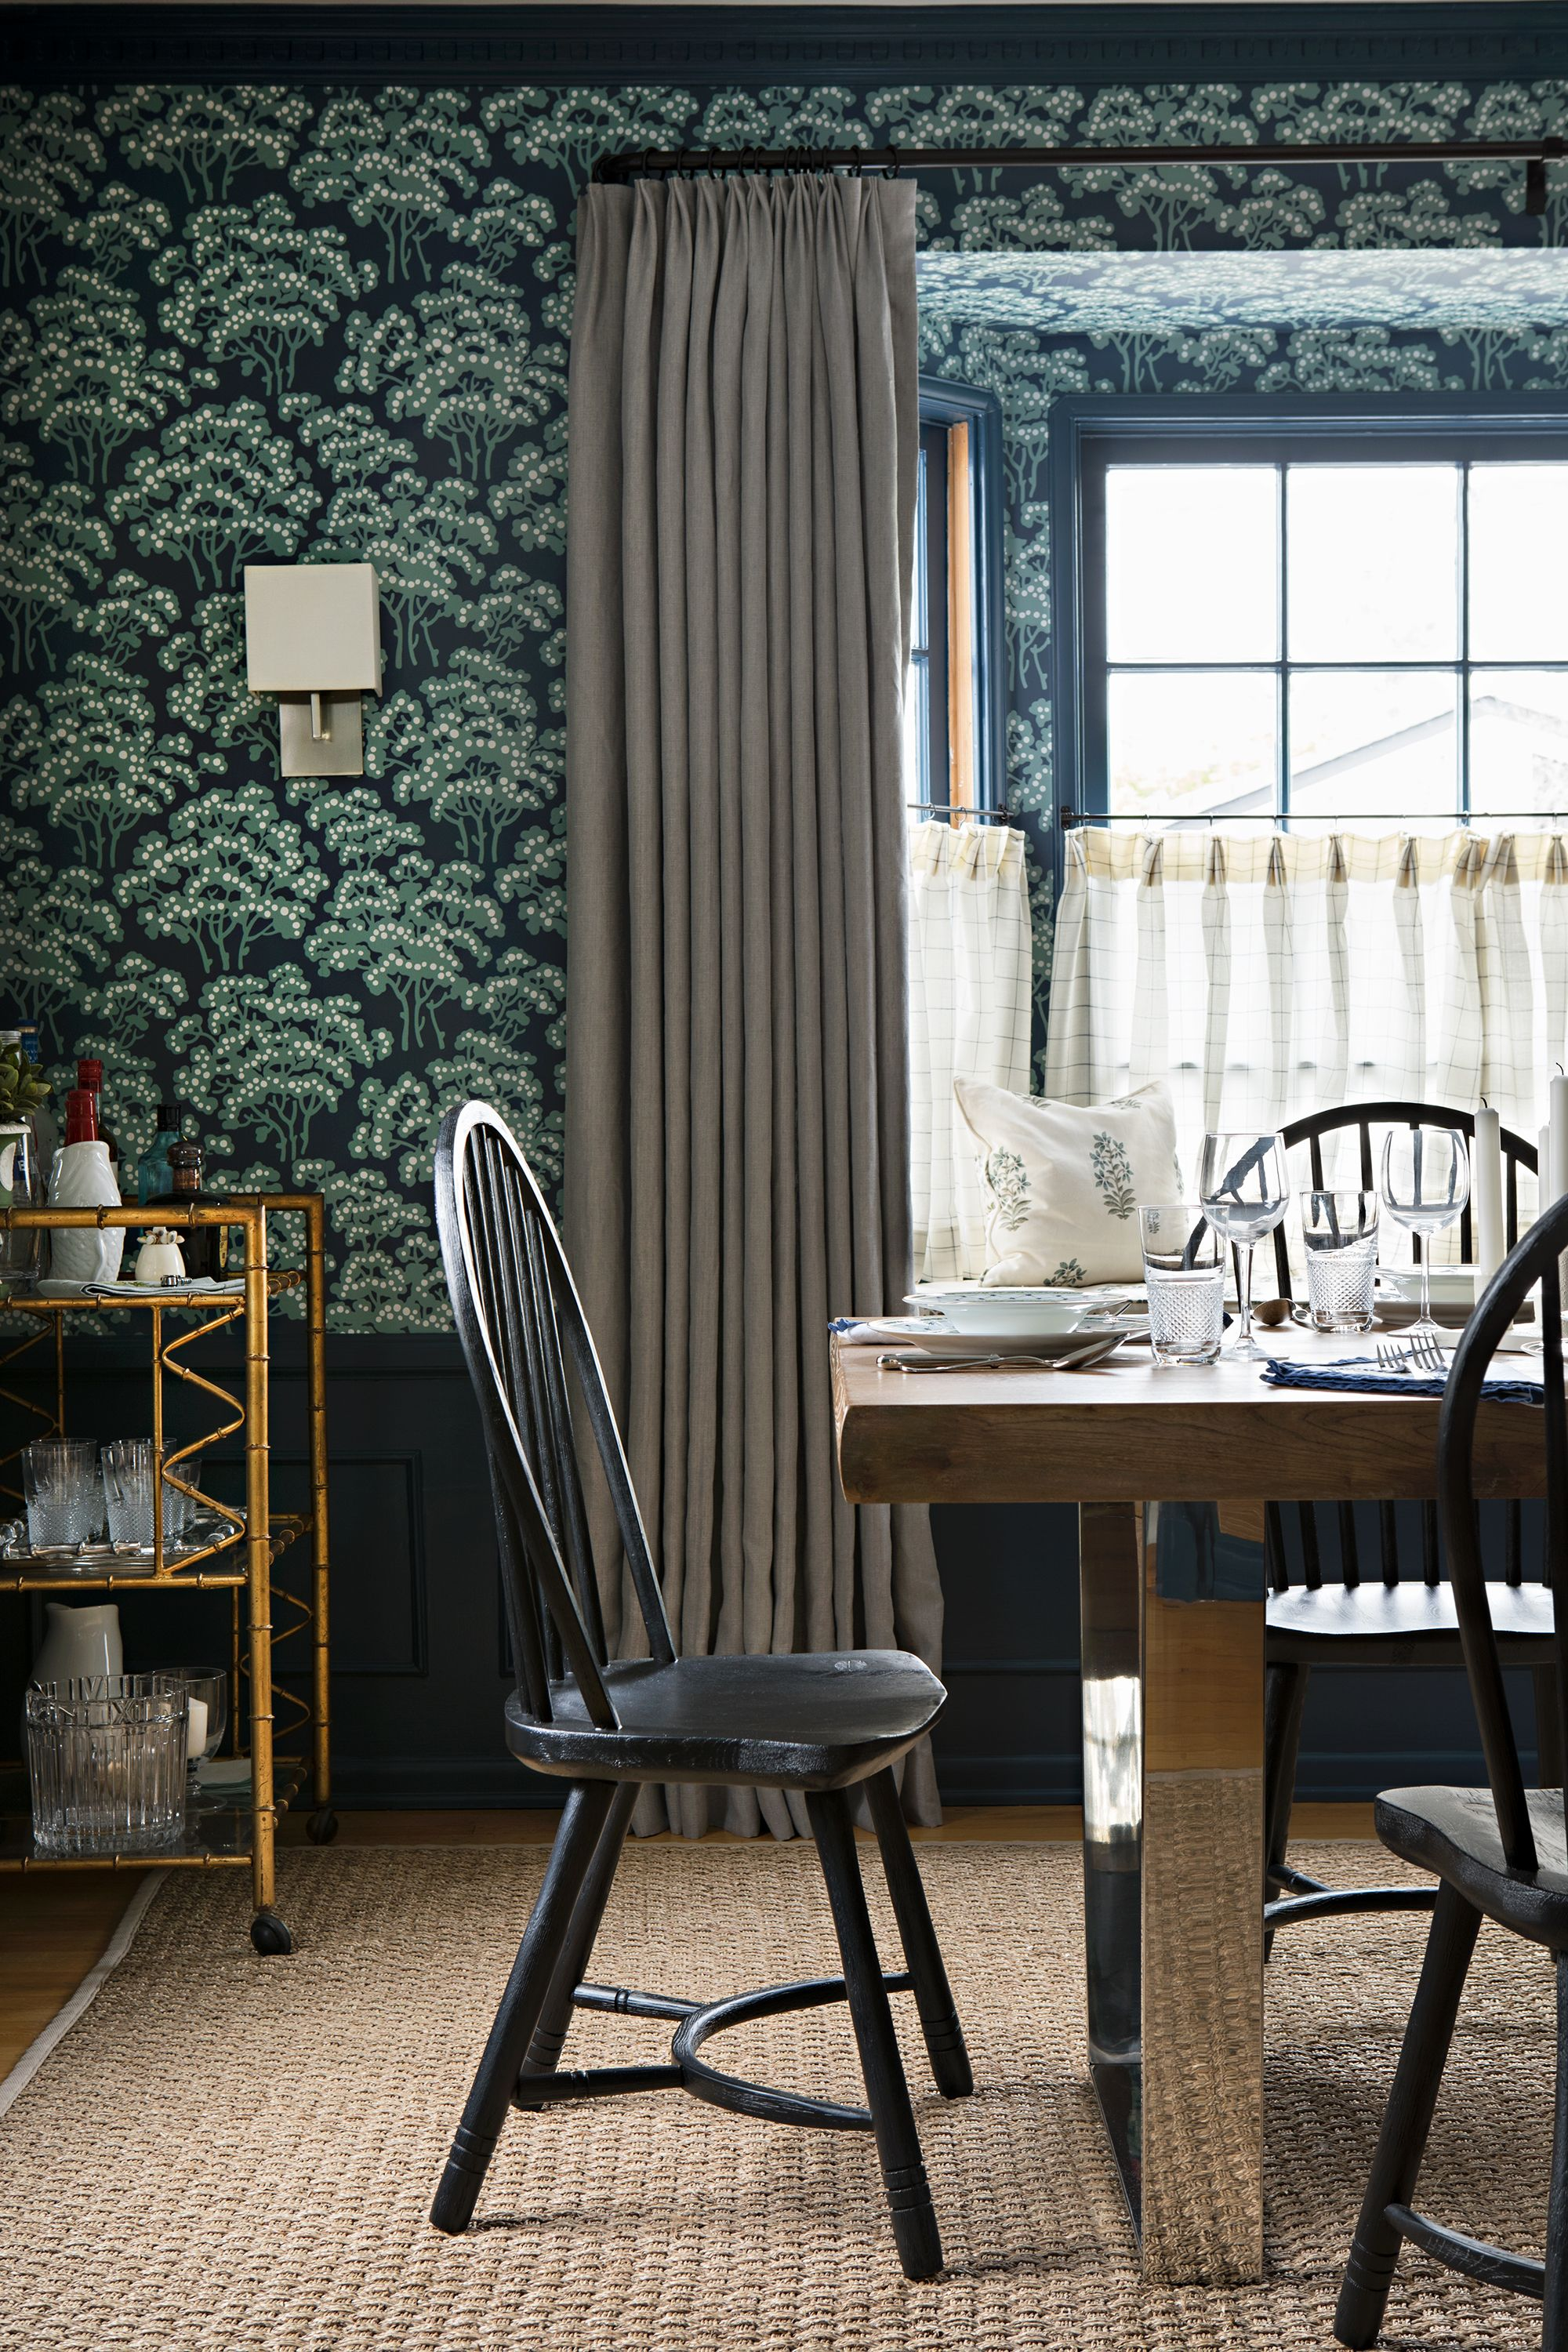 Incredible 18 Dining Room Wallpaper Ideas Thatll Elevate All Your Dailytribune Chair Design For Home Dailytribuneorg